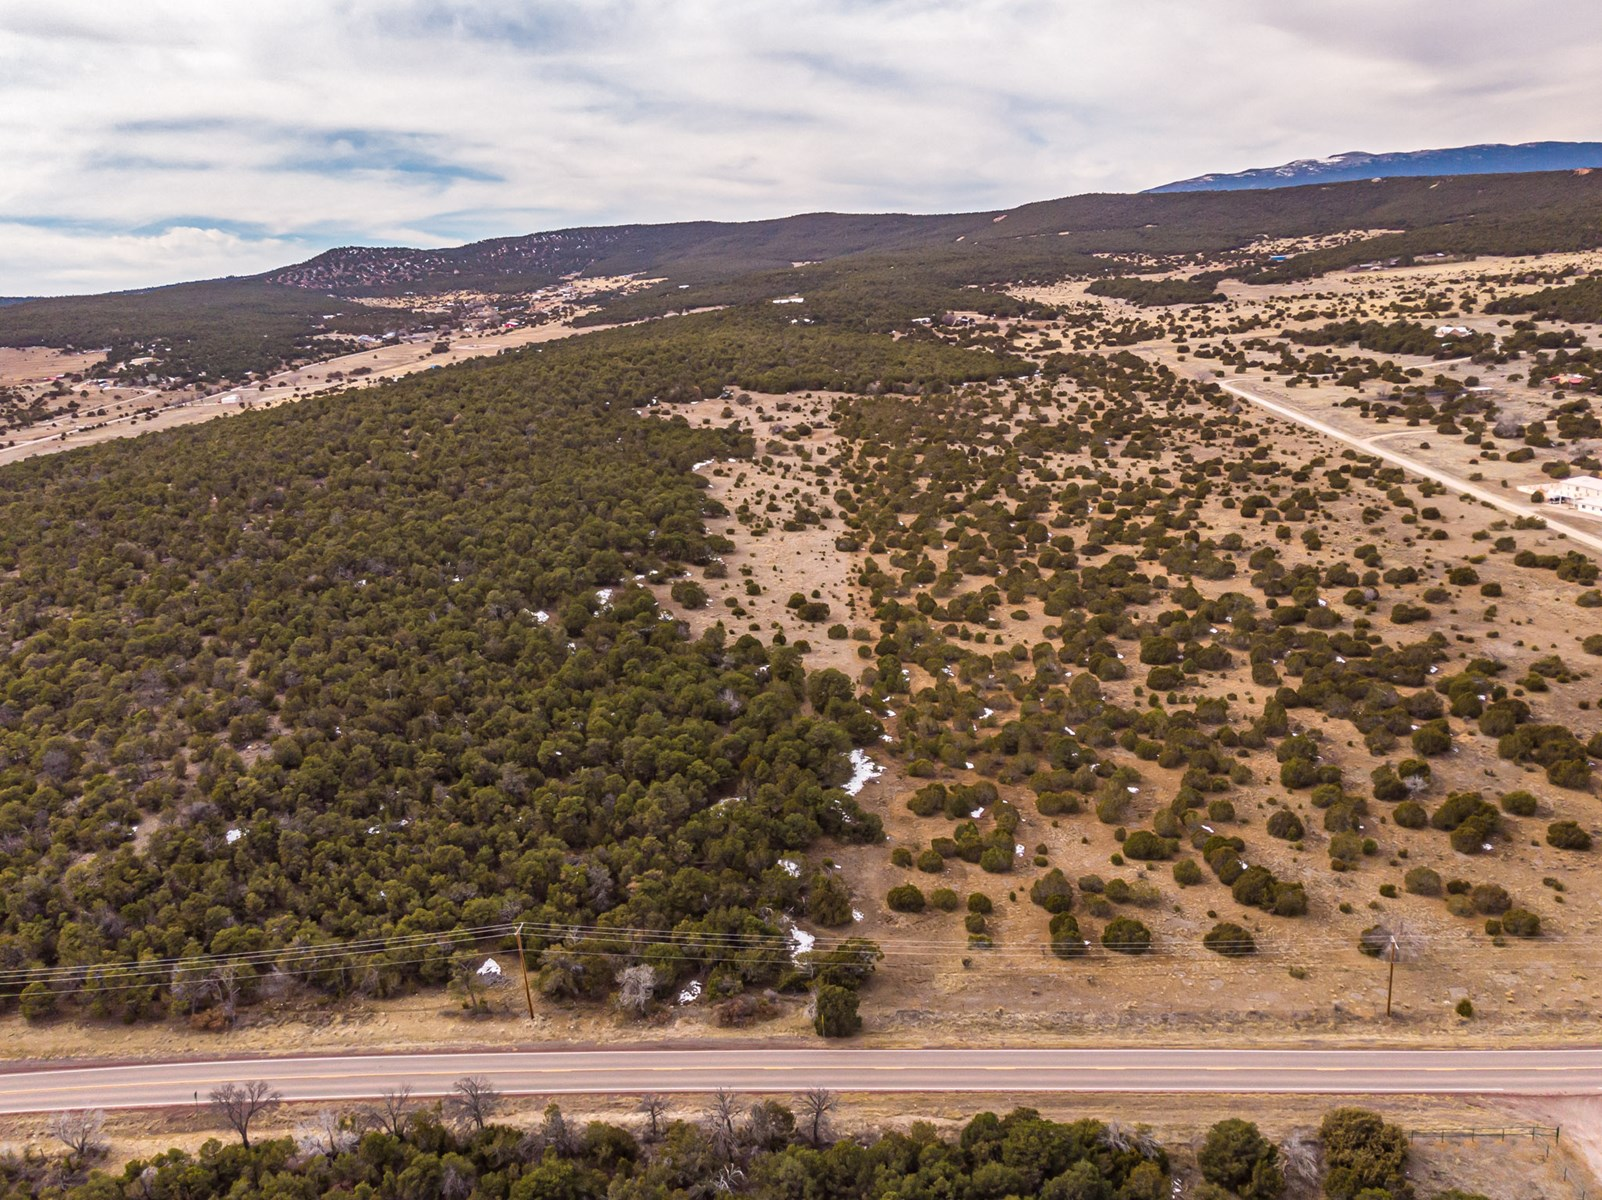 Edgewood, New Mexico 80 Acres Wooded with Metal Shop